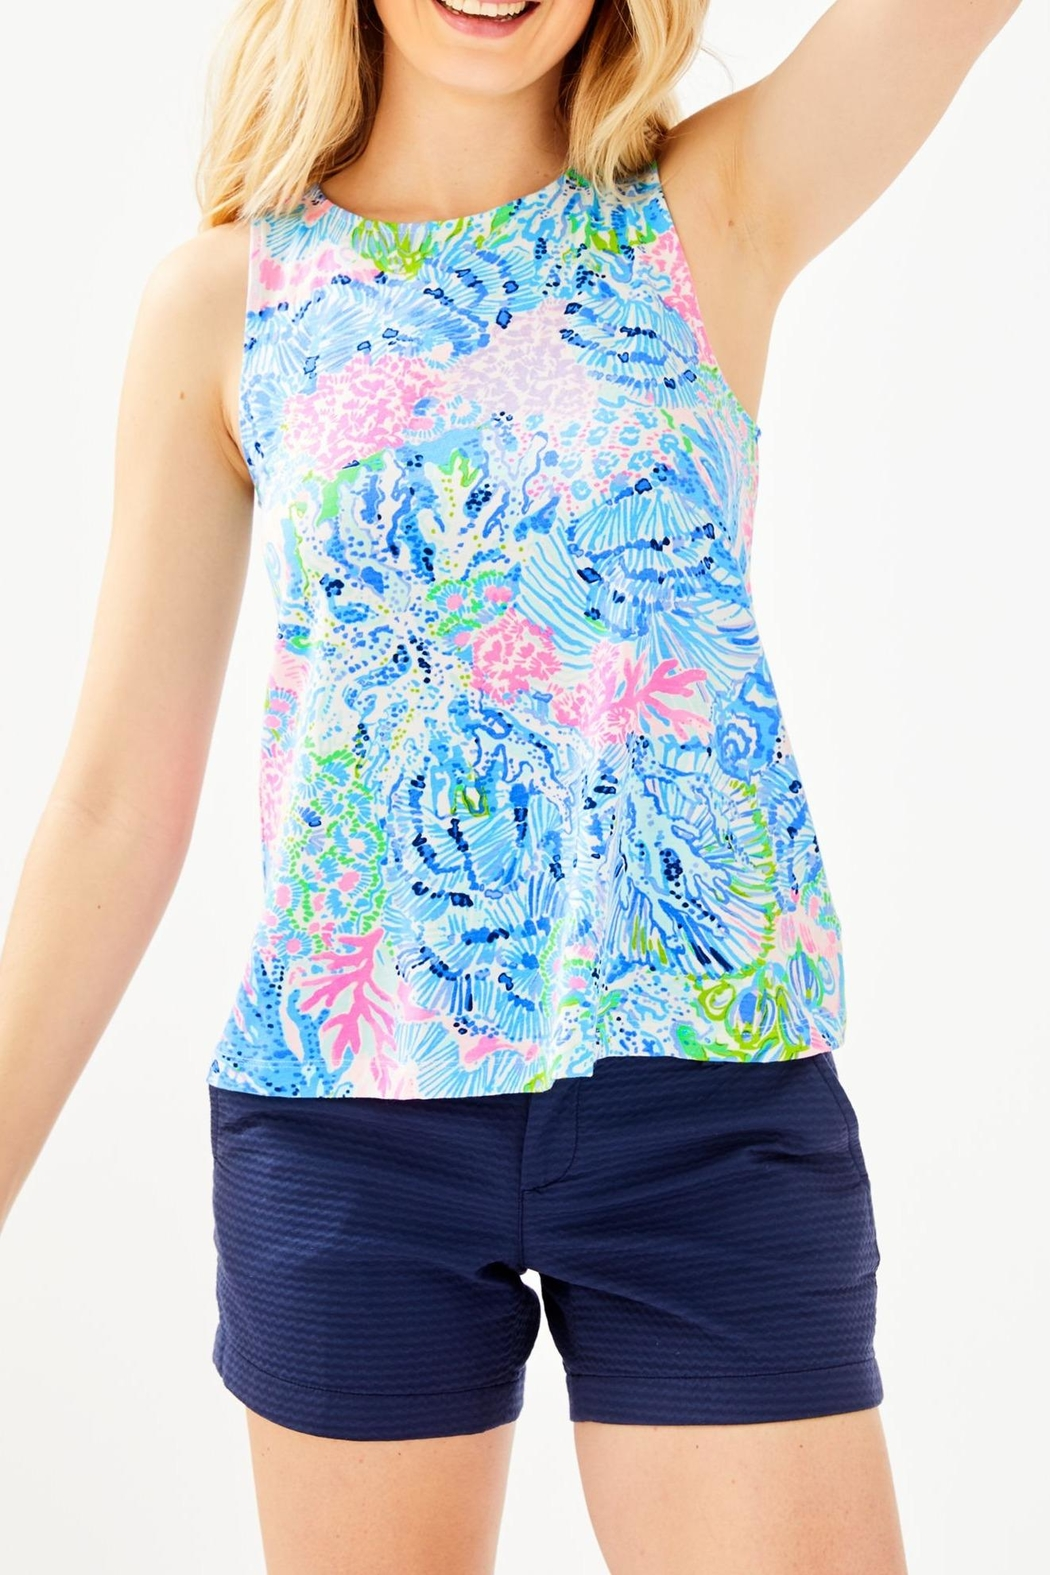 Lilly Pulitzer Kristen Top - Main Image